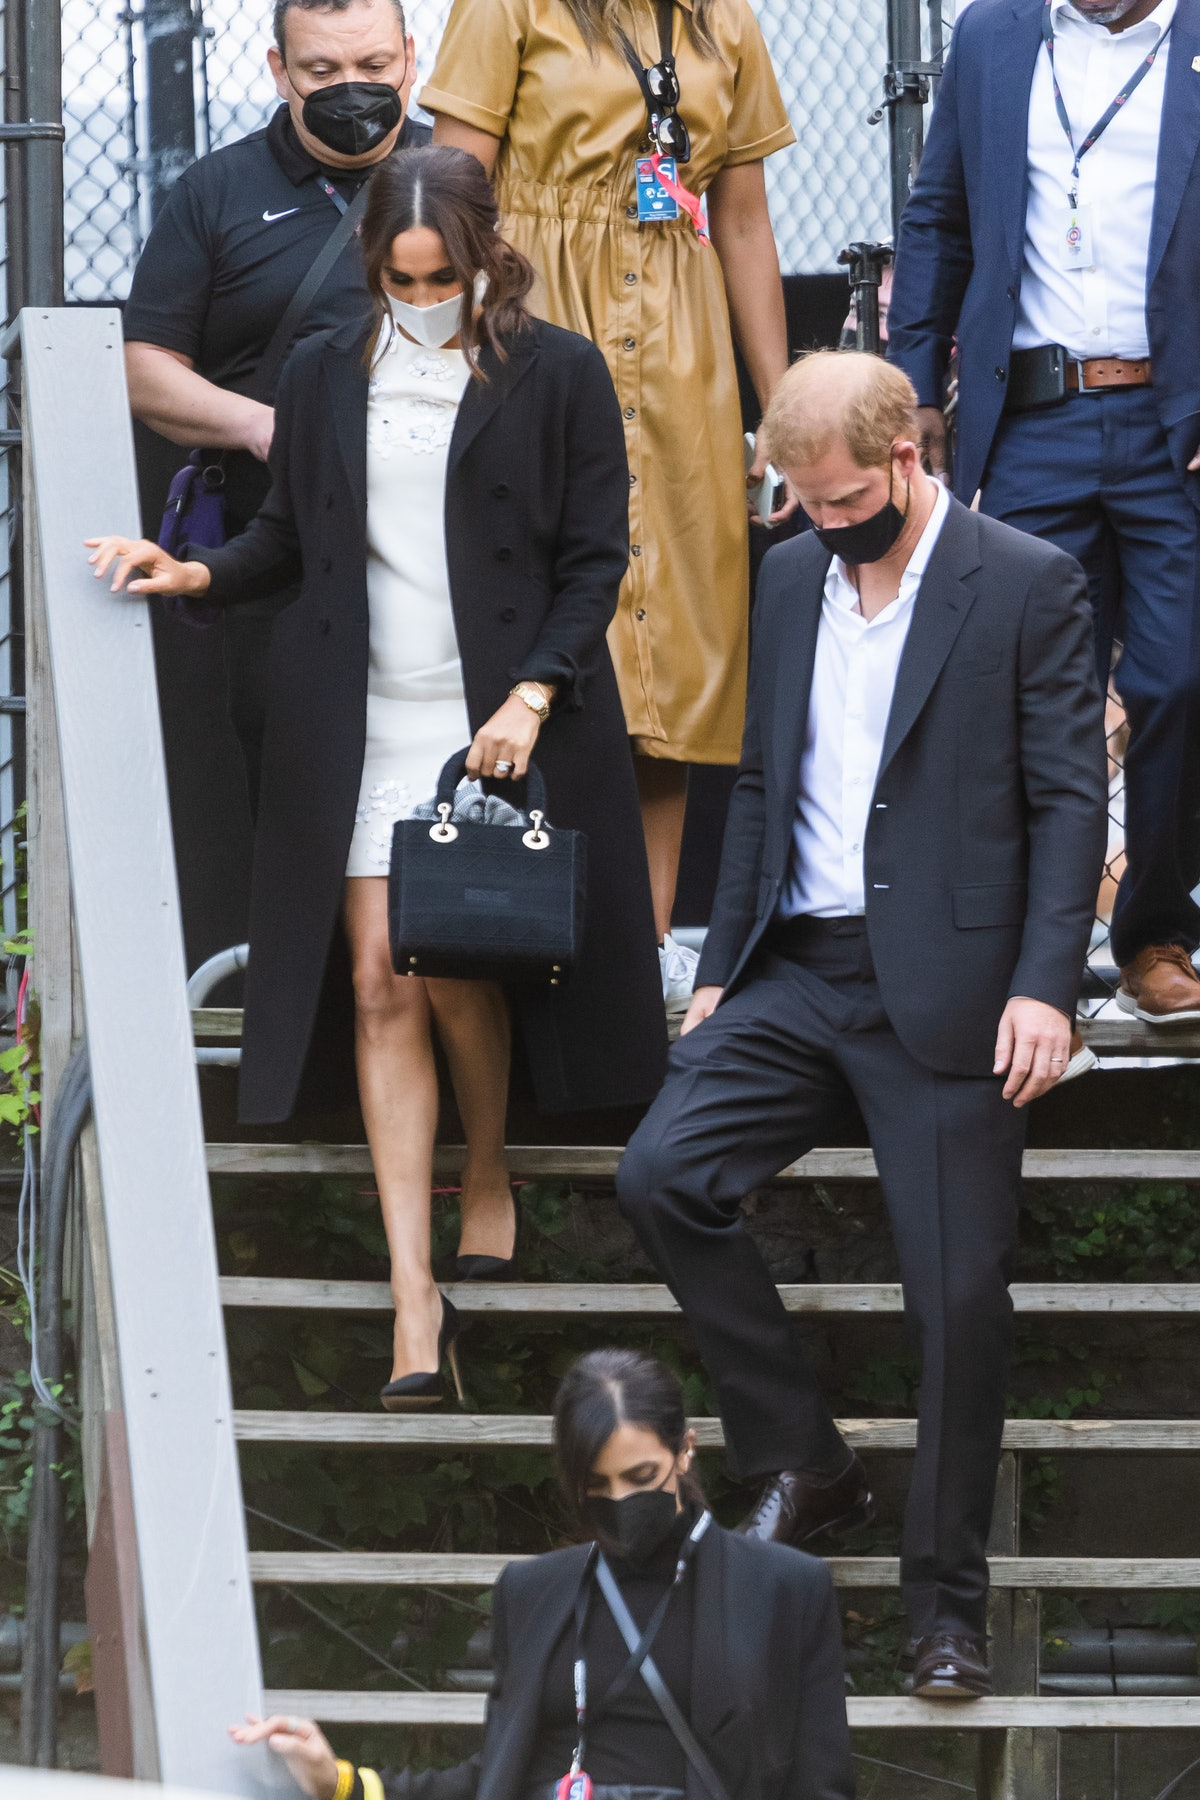 NEW YORK, NEW YORK - SEPTEMBER 25: Meghan Markle, Duchess of Sussex, and Prince Harry, Duke of Susse...